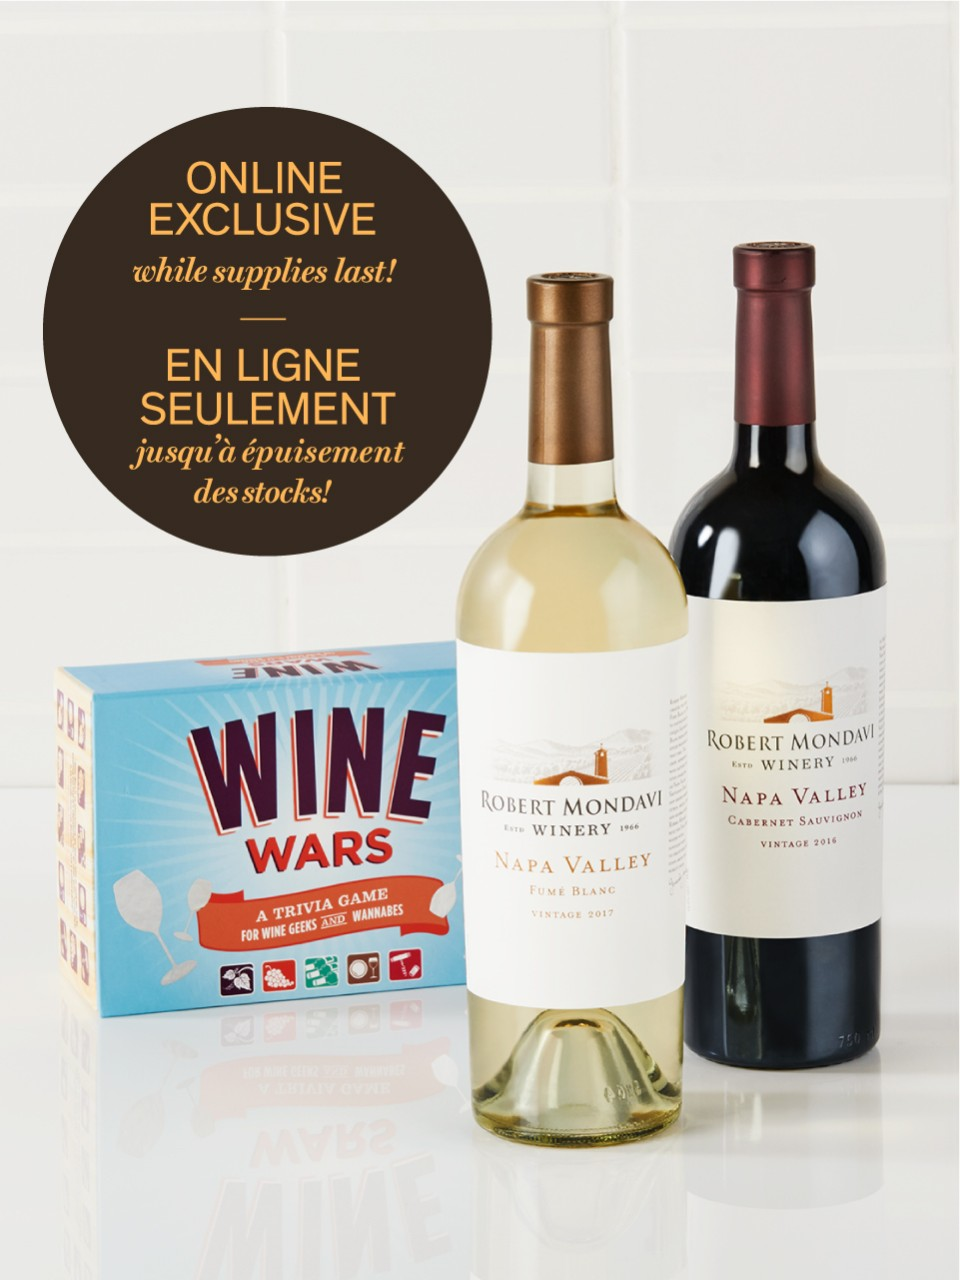 Image for Robert Mondavi Napa Valley Wine Special Offer from LCBO